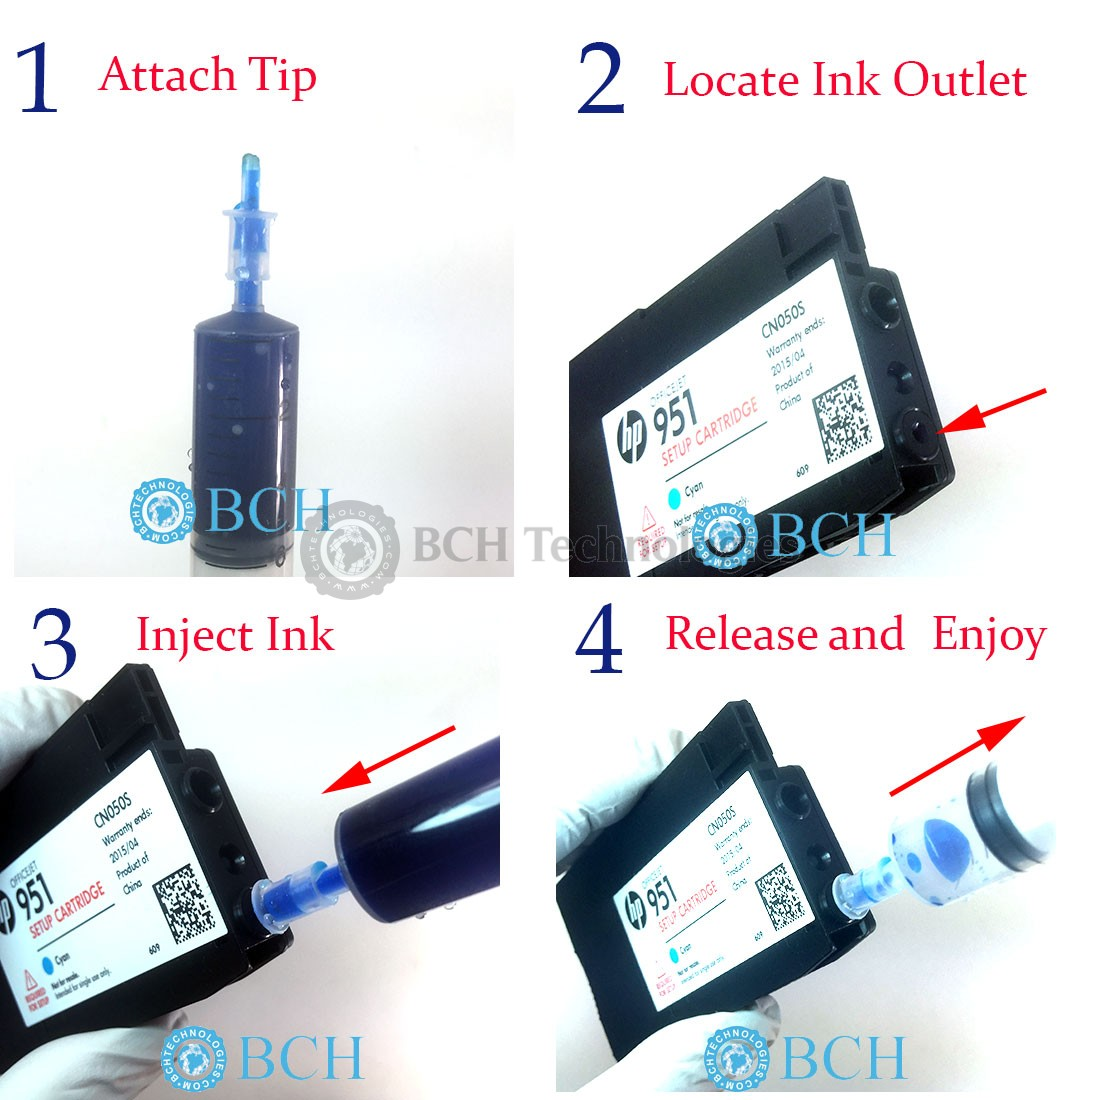 (available here:  https://www.bchtechnologies.com/accessories/refill-tip-adapter-for-hp-950-951-932- 933-xl-cartridges.html), you do not to drill a hole.